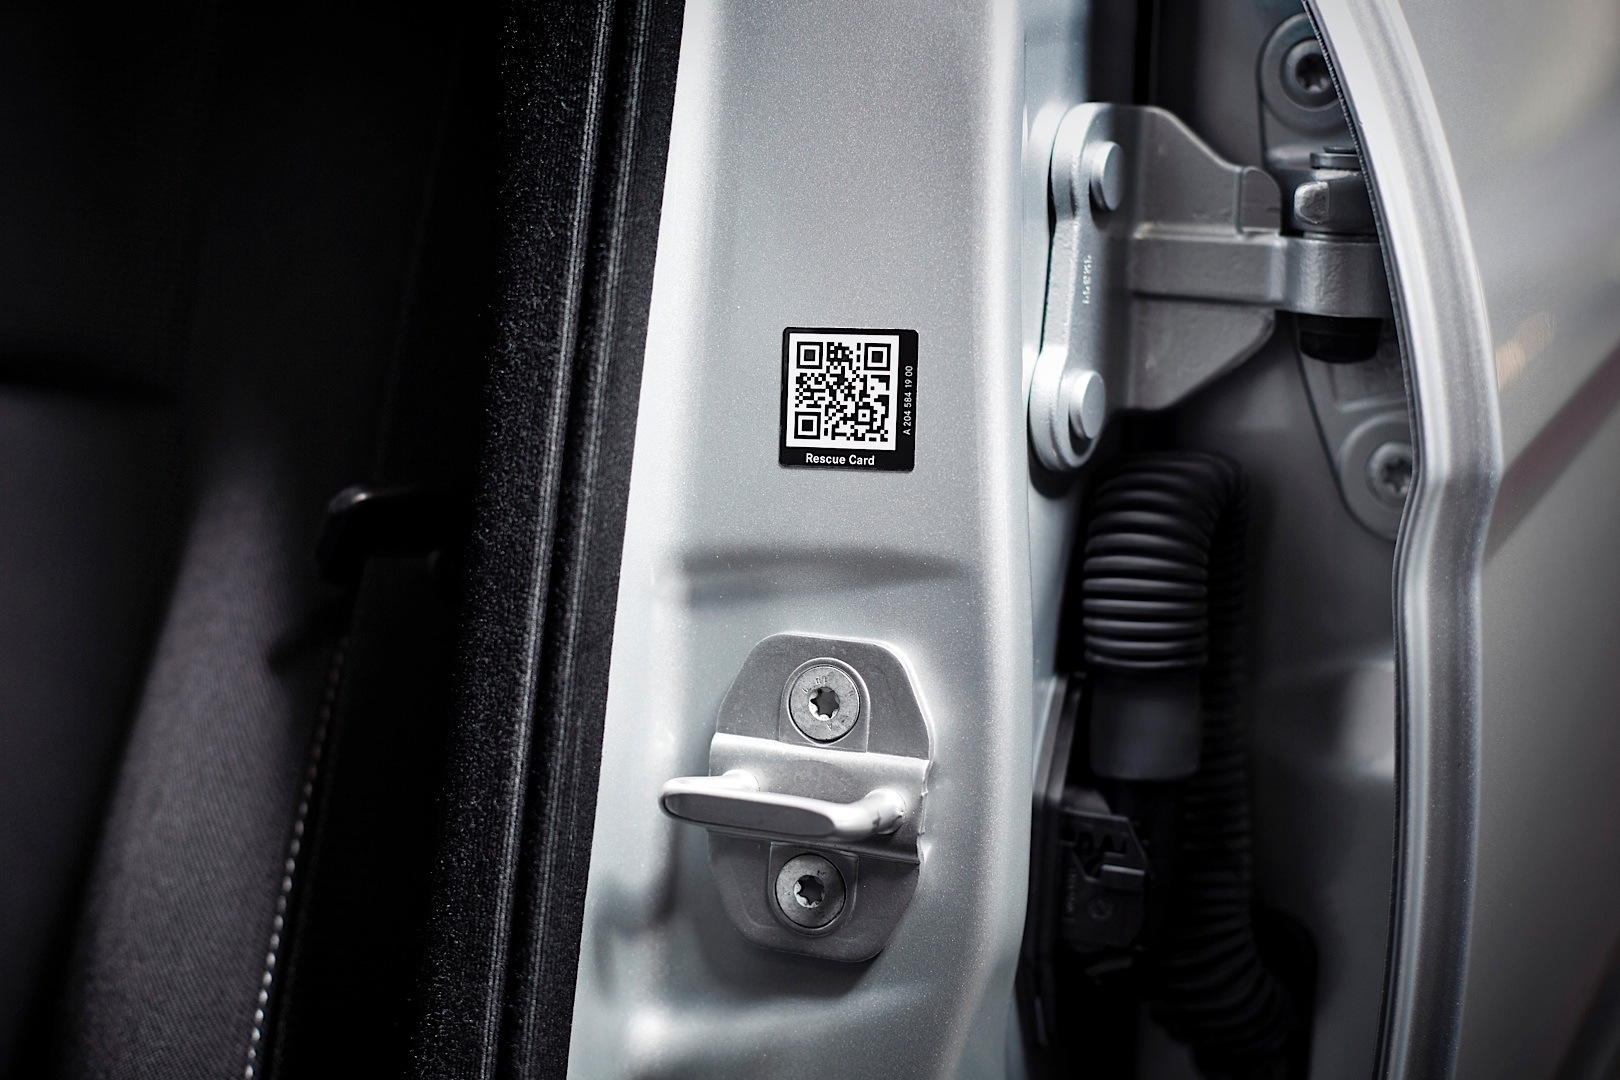 New Nissan Maxima >> Mercedes-Benz is First to Offer QR Code Rescue Cards on Its Vehicles - autoevolution